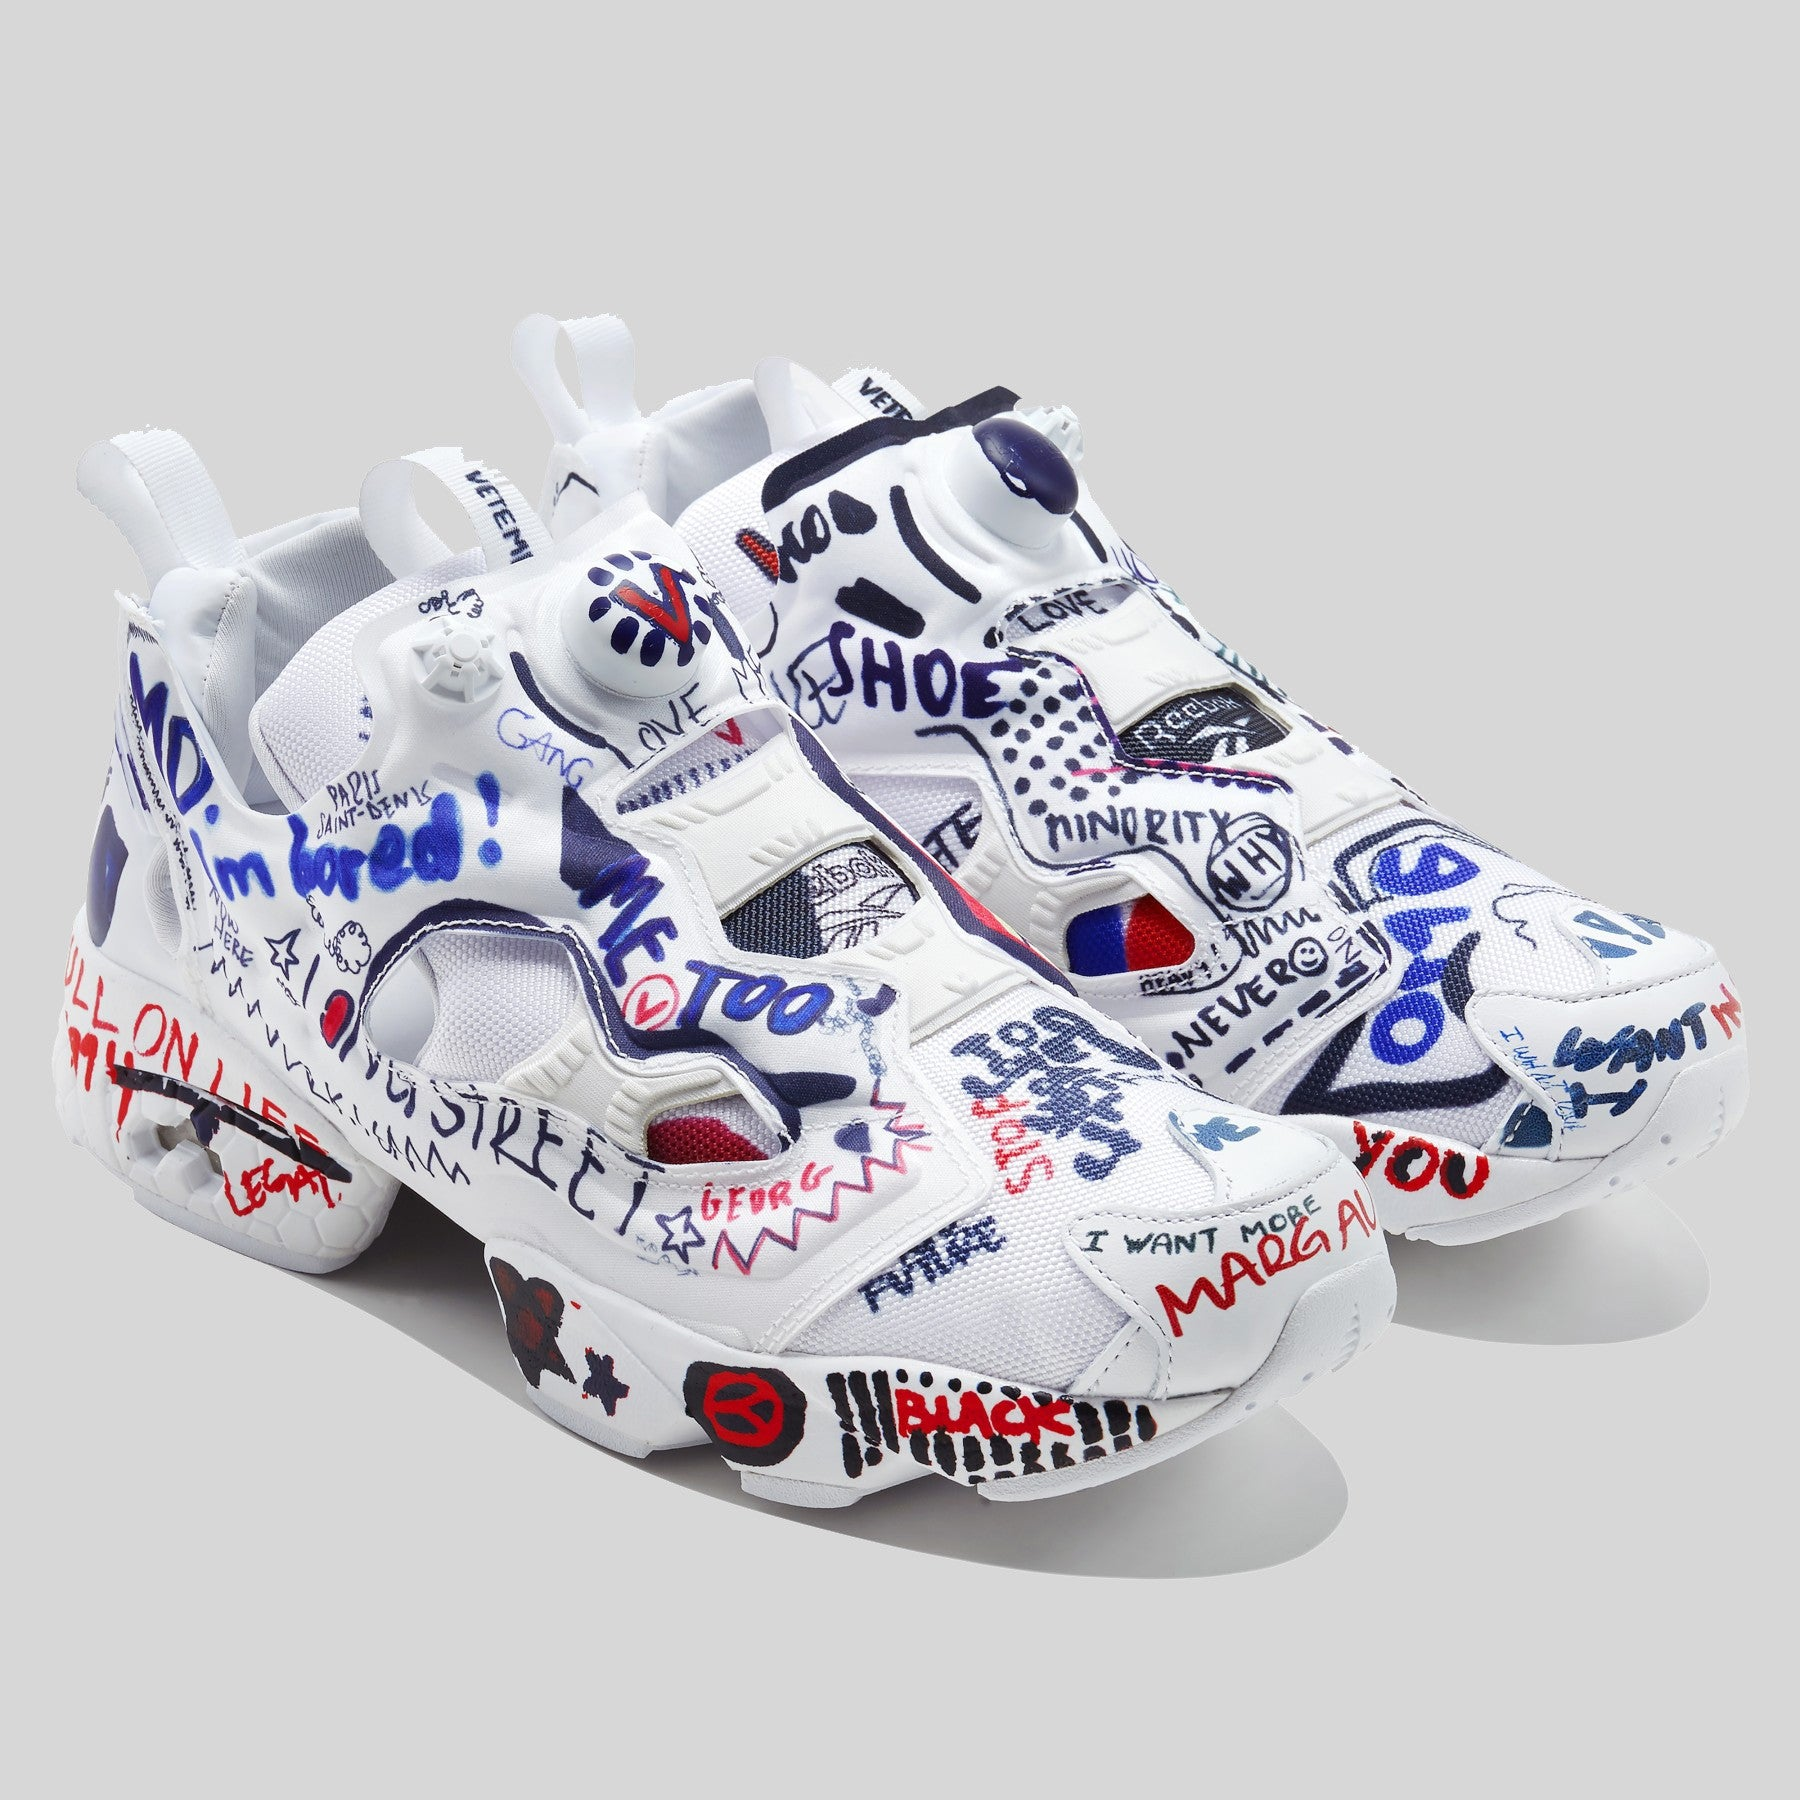 Reebok X Vetements